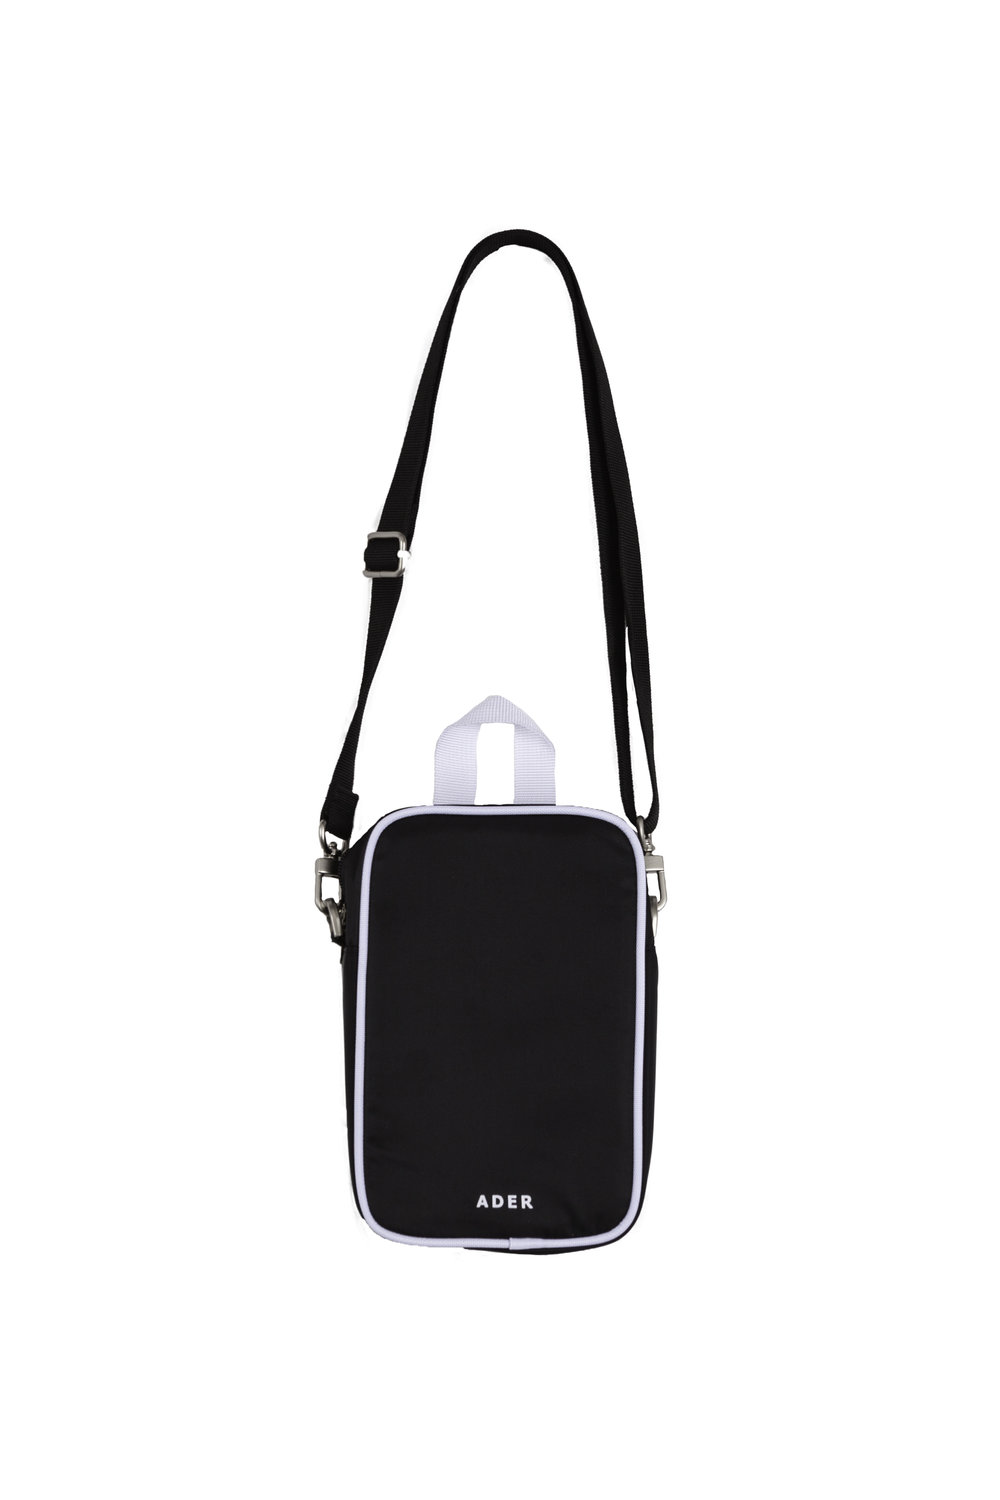 Ader Black Cross – Bag Error Mini wxRF8zq